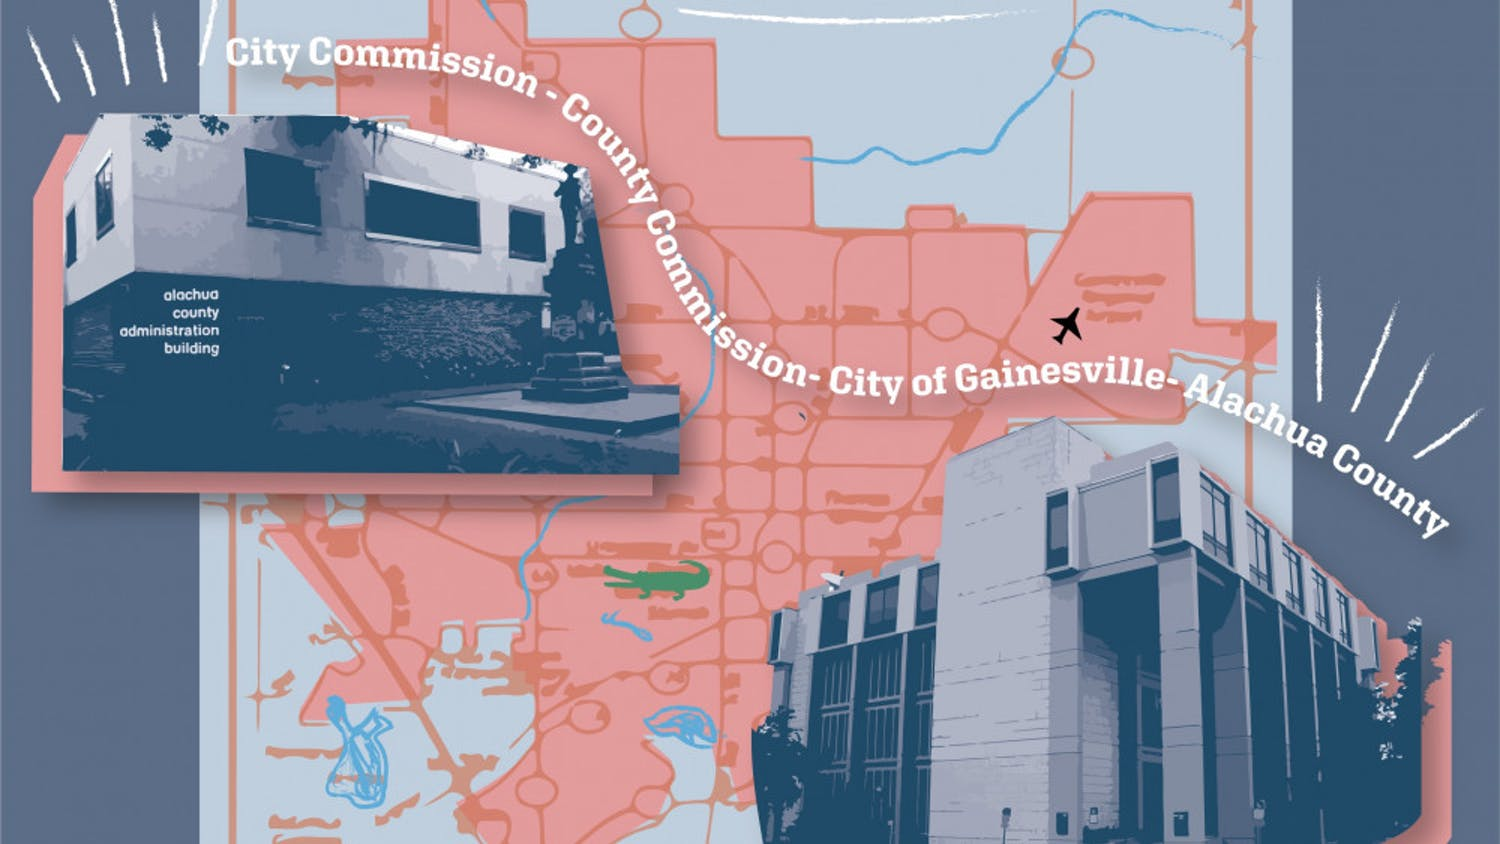 Graphic of Gainesville City Hall and the County Administration Building